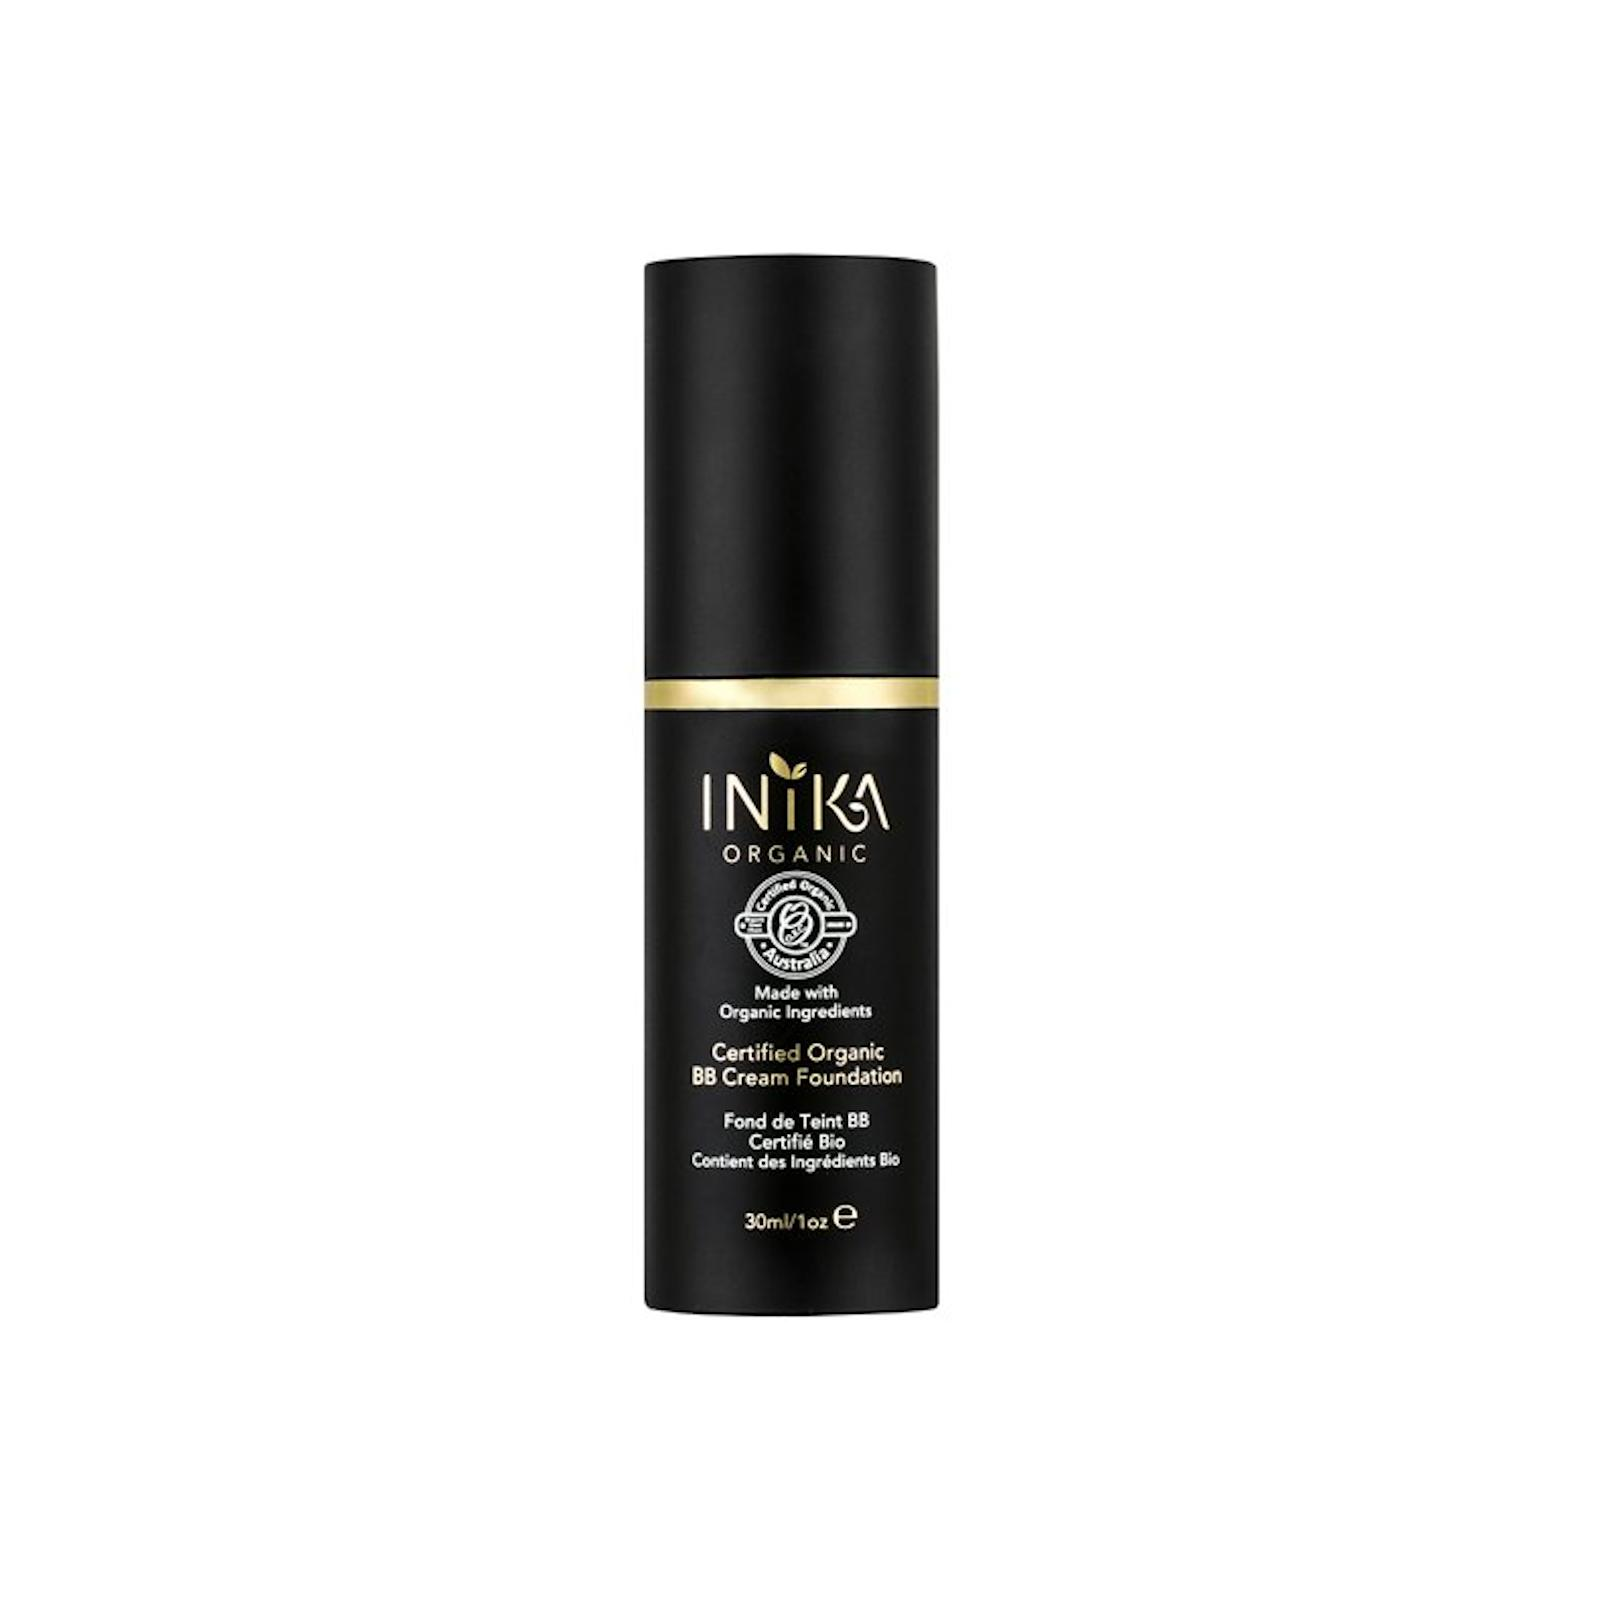 Inika Organic BB krém Tan 30 ml